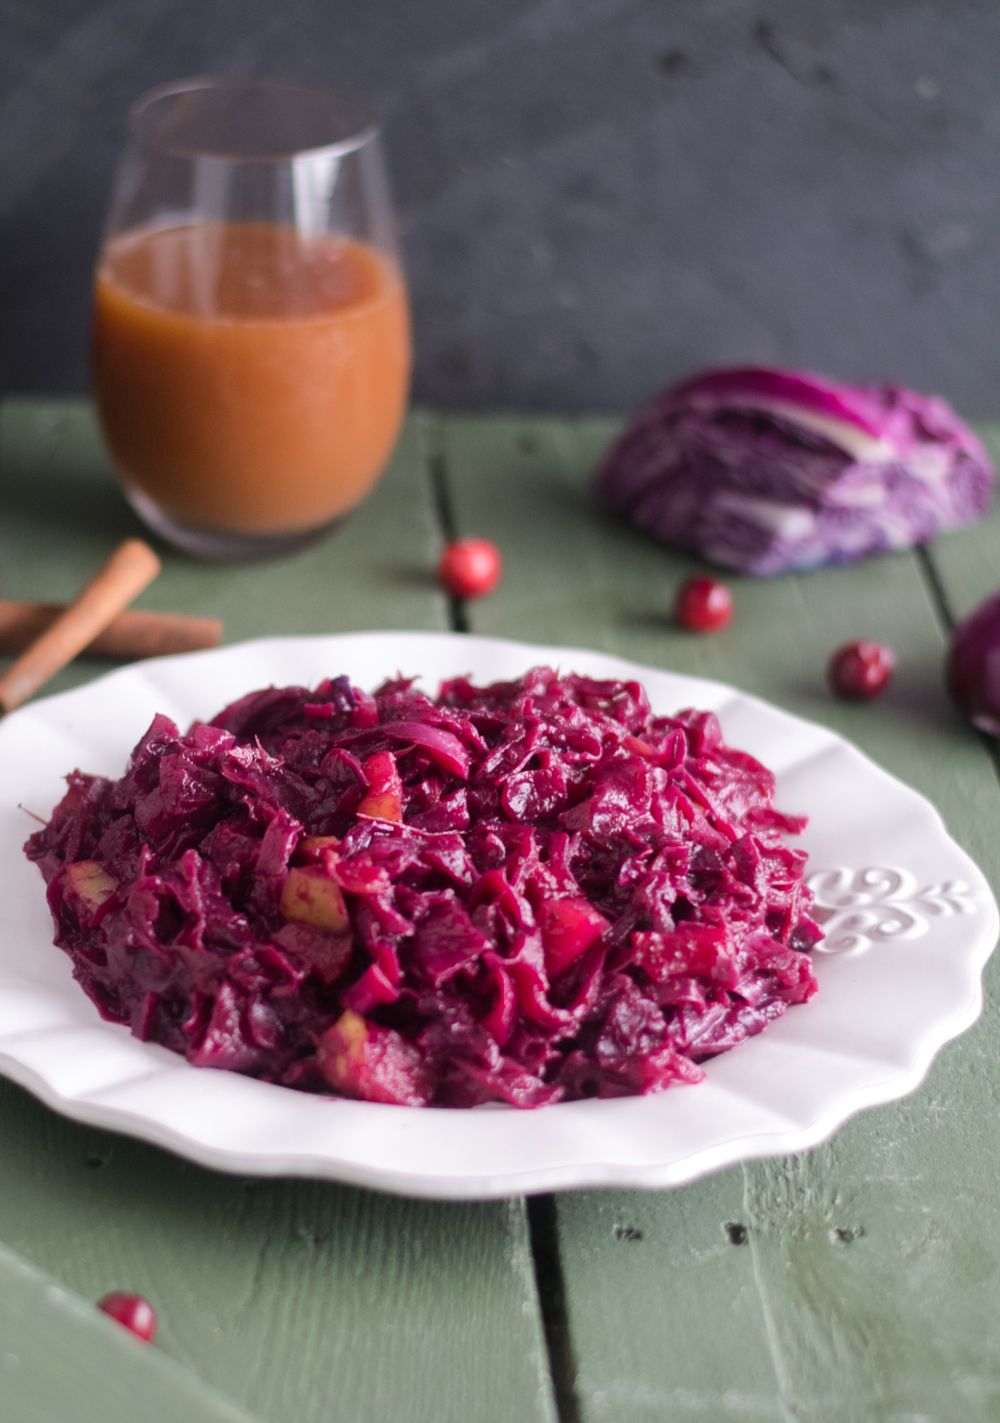 Add this festive Braised Red Cabbage with cranberries to your holiday table! #vegan #glutenfree